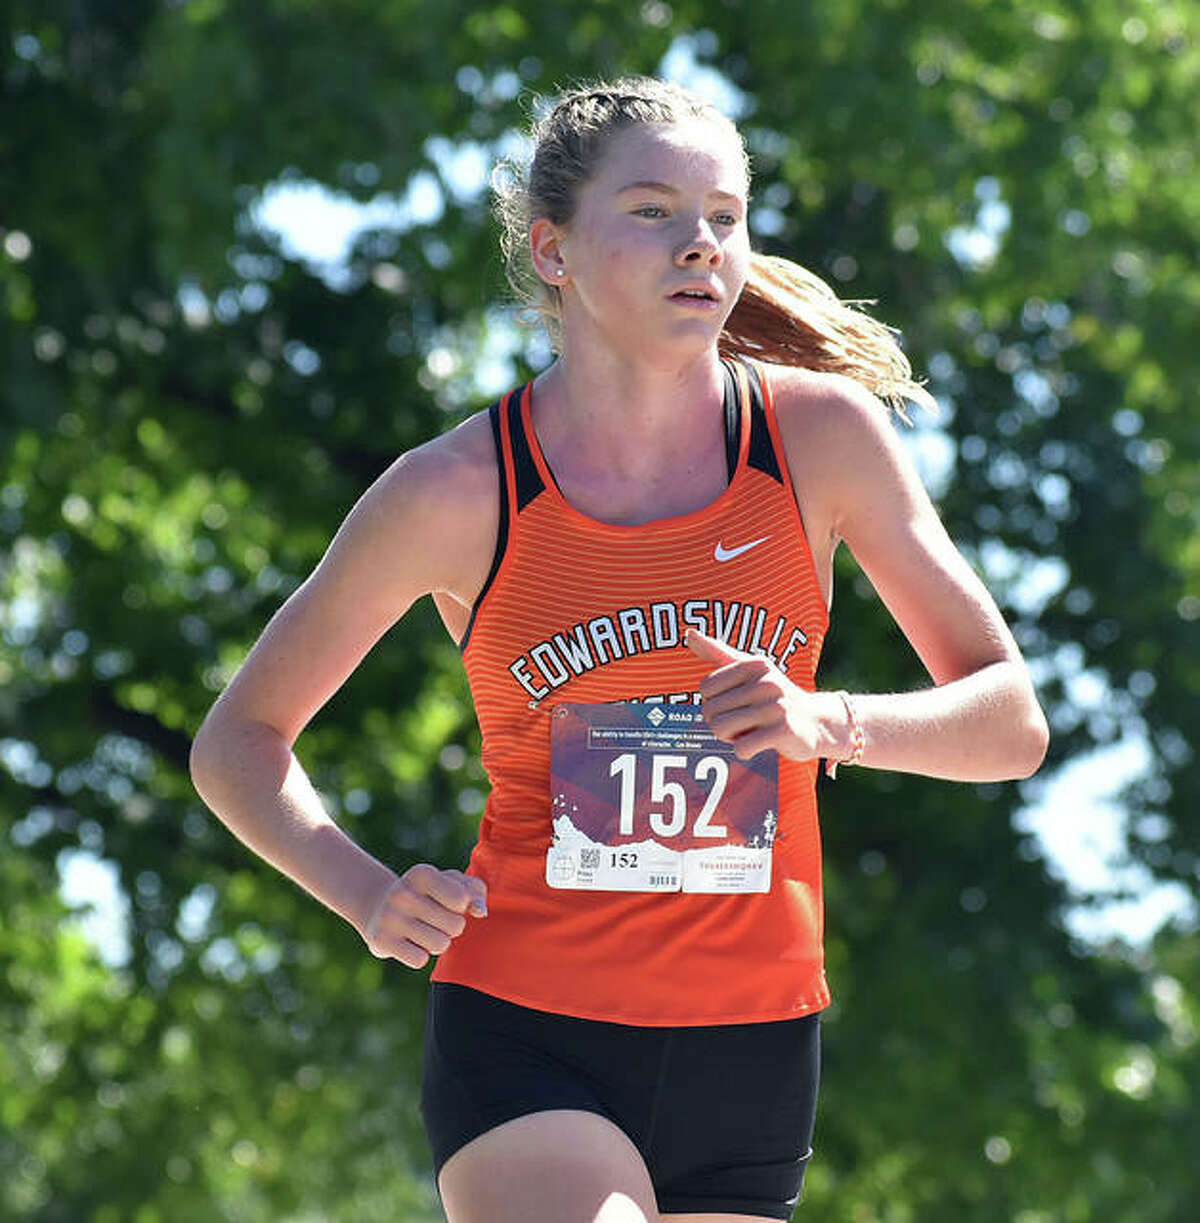 Edwardsville's Riley Knoyle will start her senior season on the sideline as she attempts to return from an injury suffered during the spring.